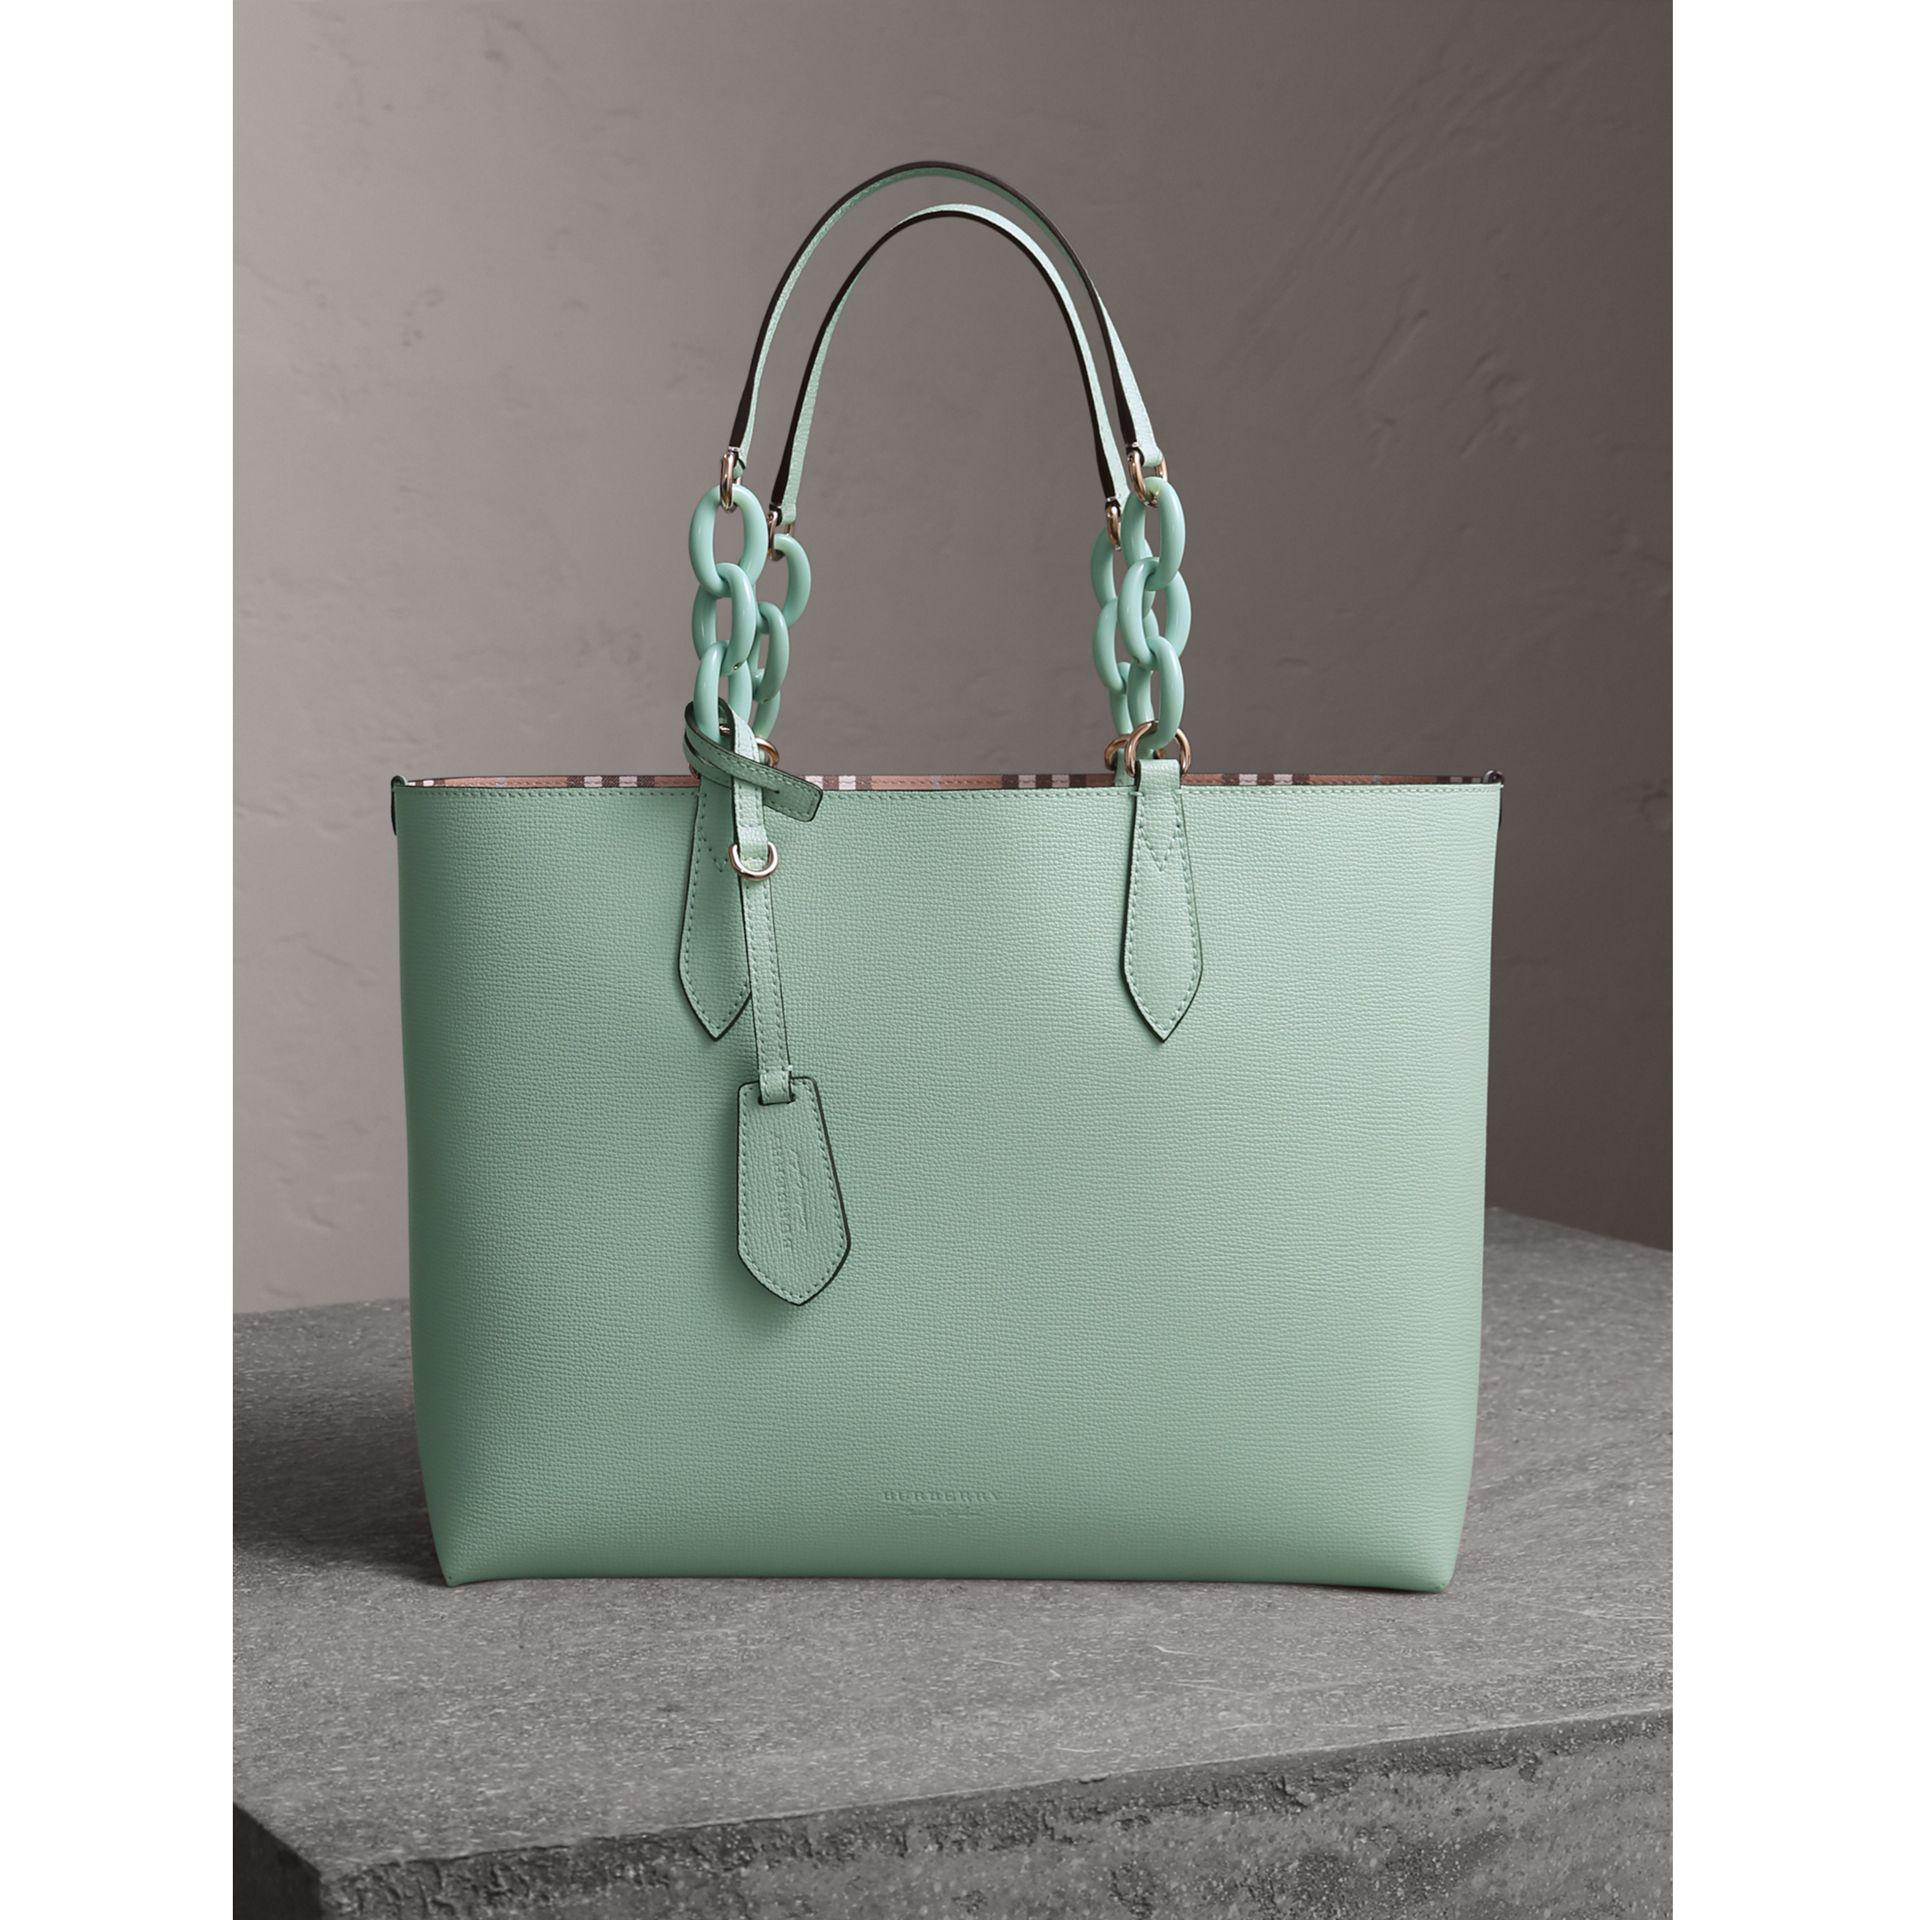 Lyst - Burberry The Medium Reversible Tote With Resin Chain In Pale ... 4737ab3041b6d